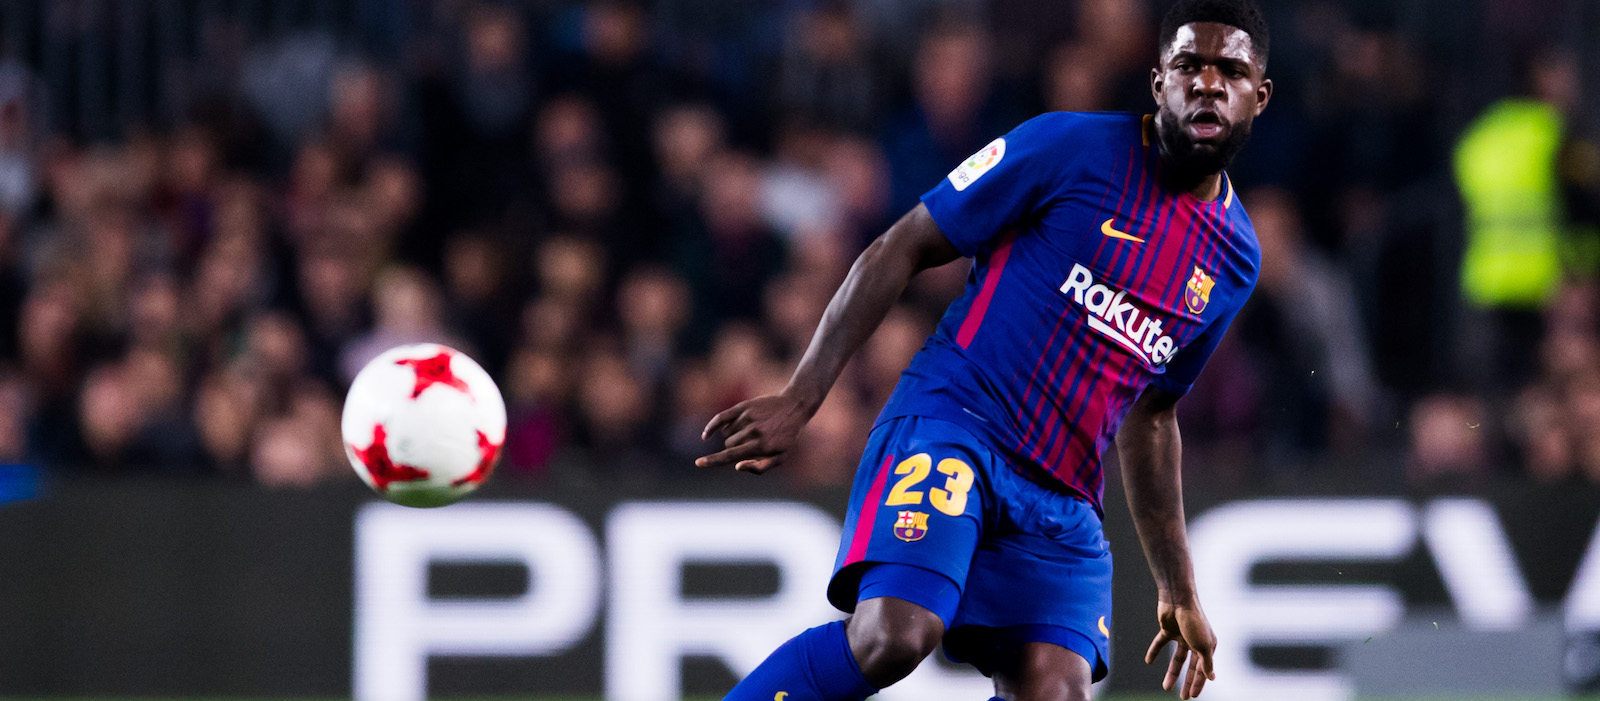 Samuel Umtiti points to Barcelona badge against Roma amid Manchester United speculation